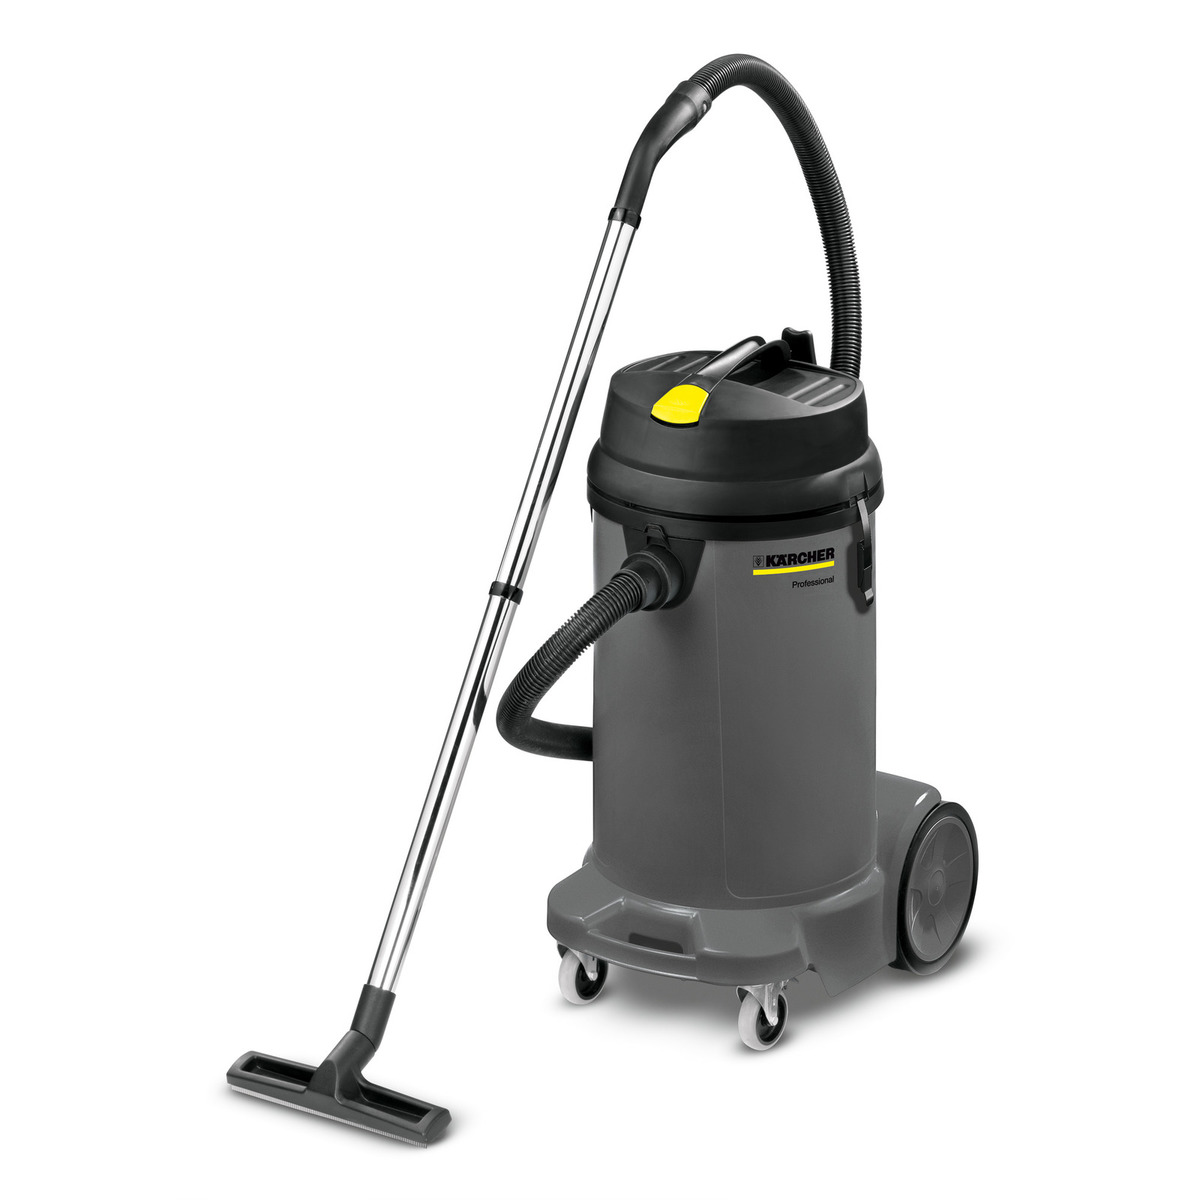 Karcher NT 48/1 Wet & Dry Vacuum Cleaner